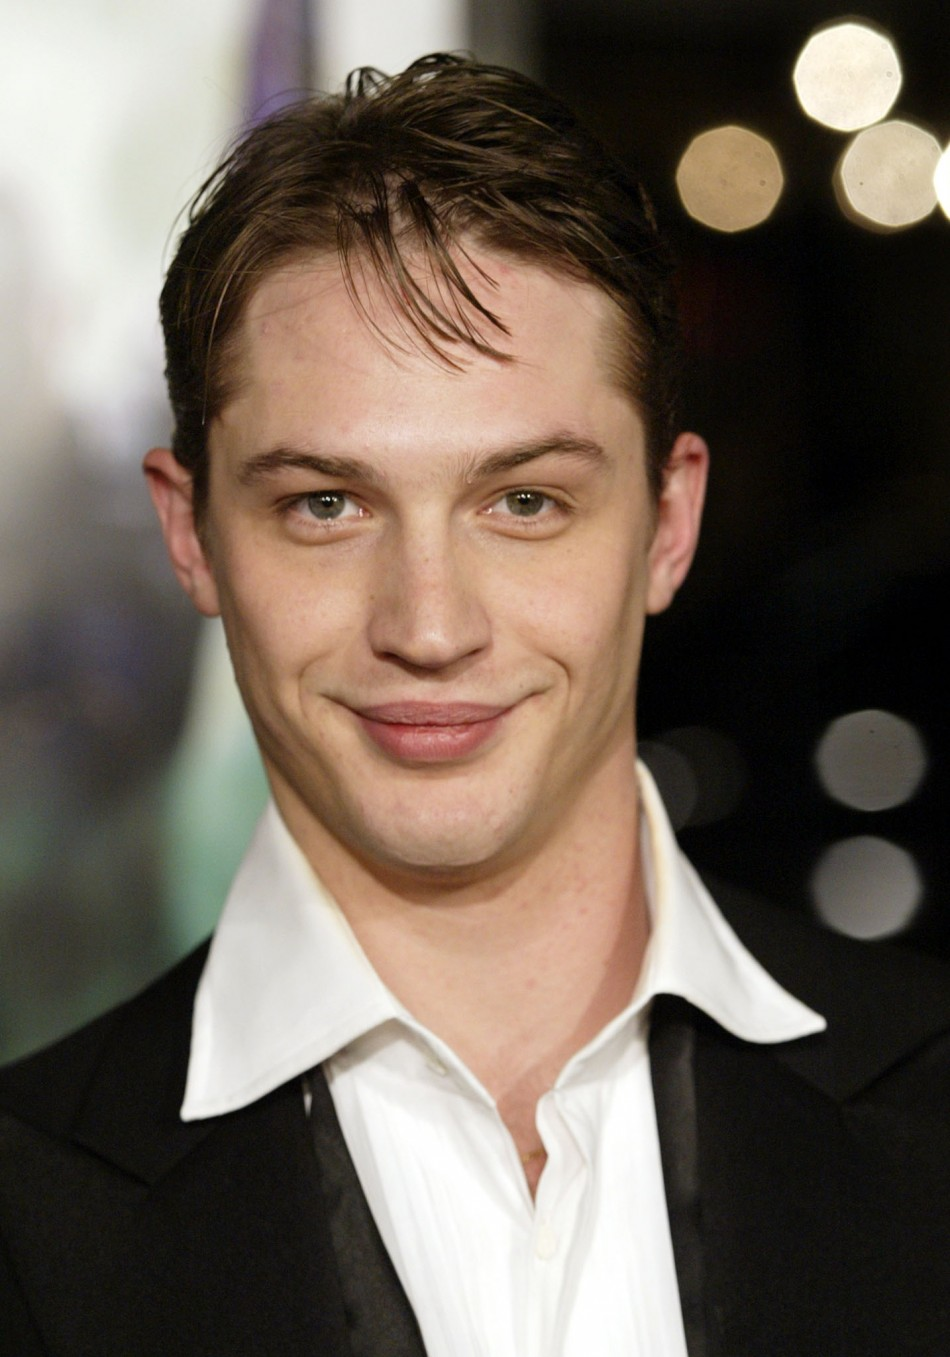 Tom Hardy younger photo three at tumblr.com